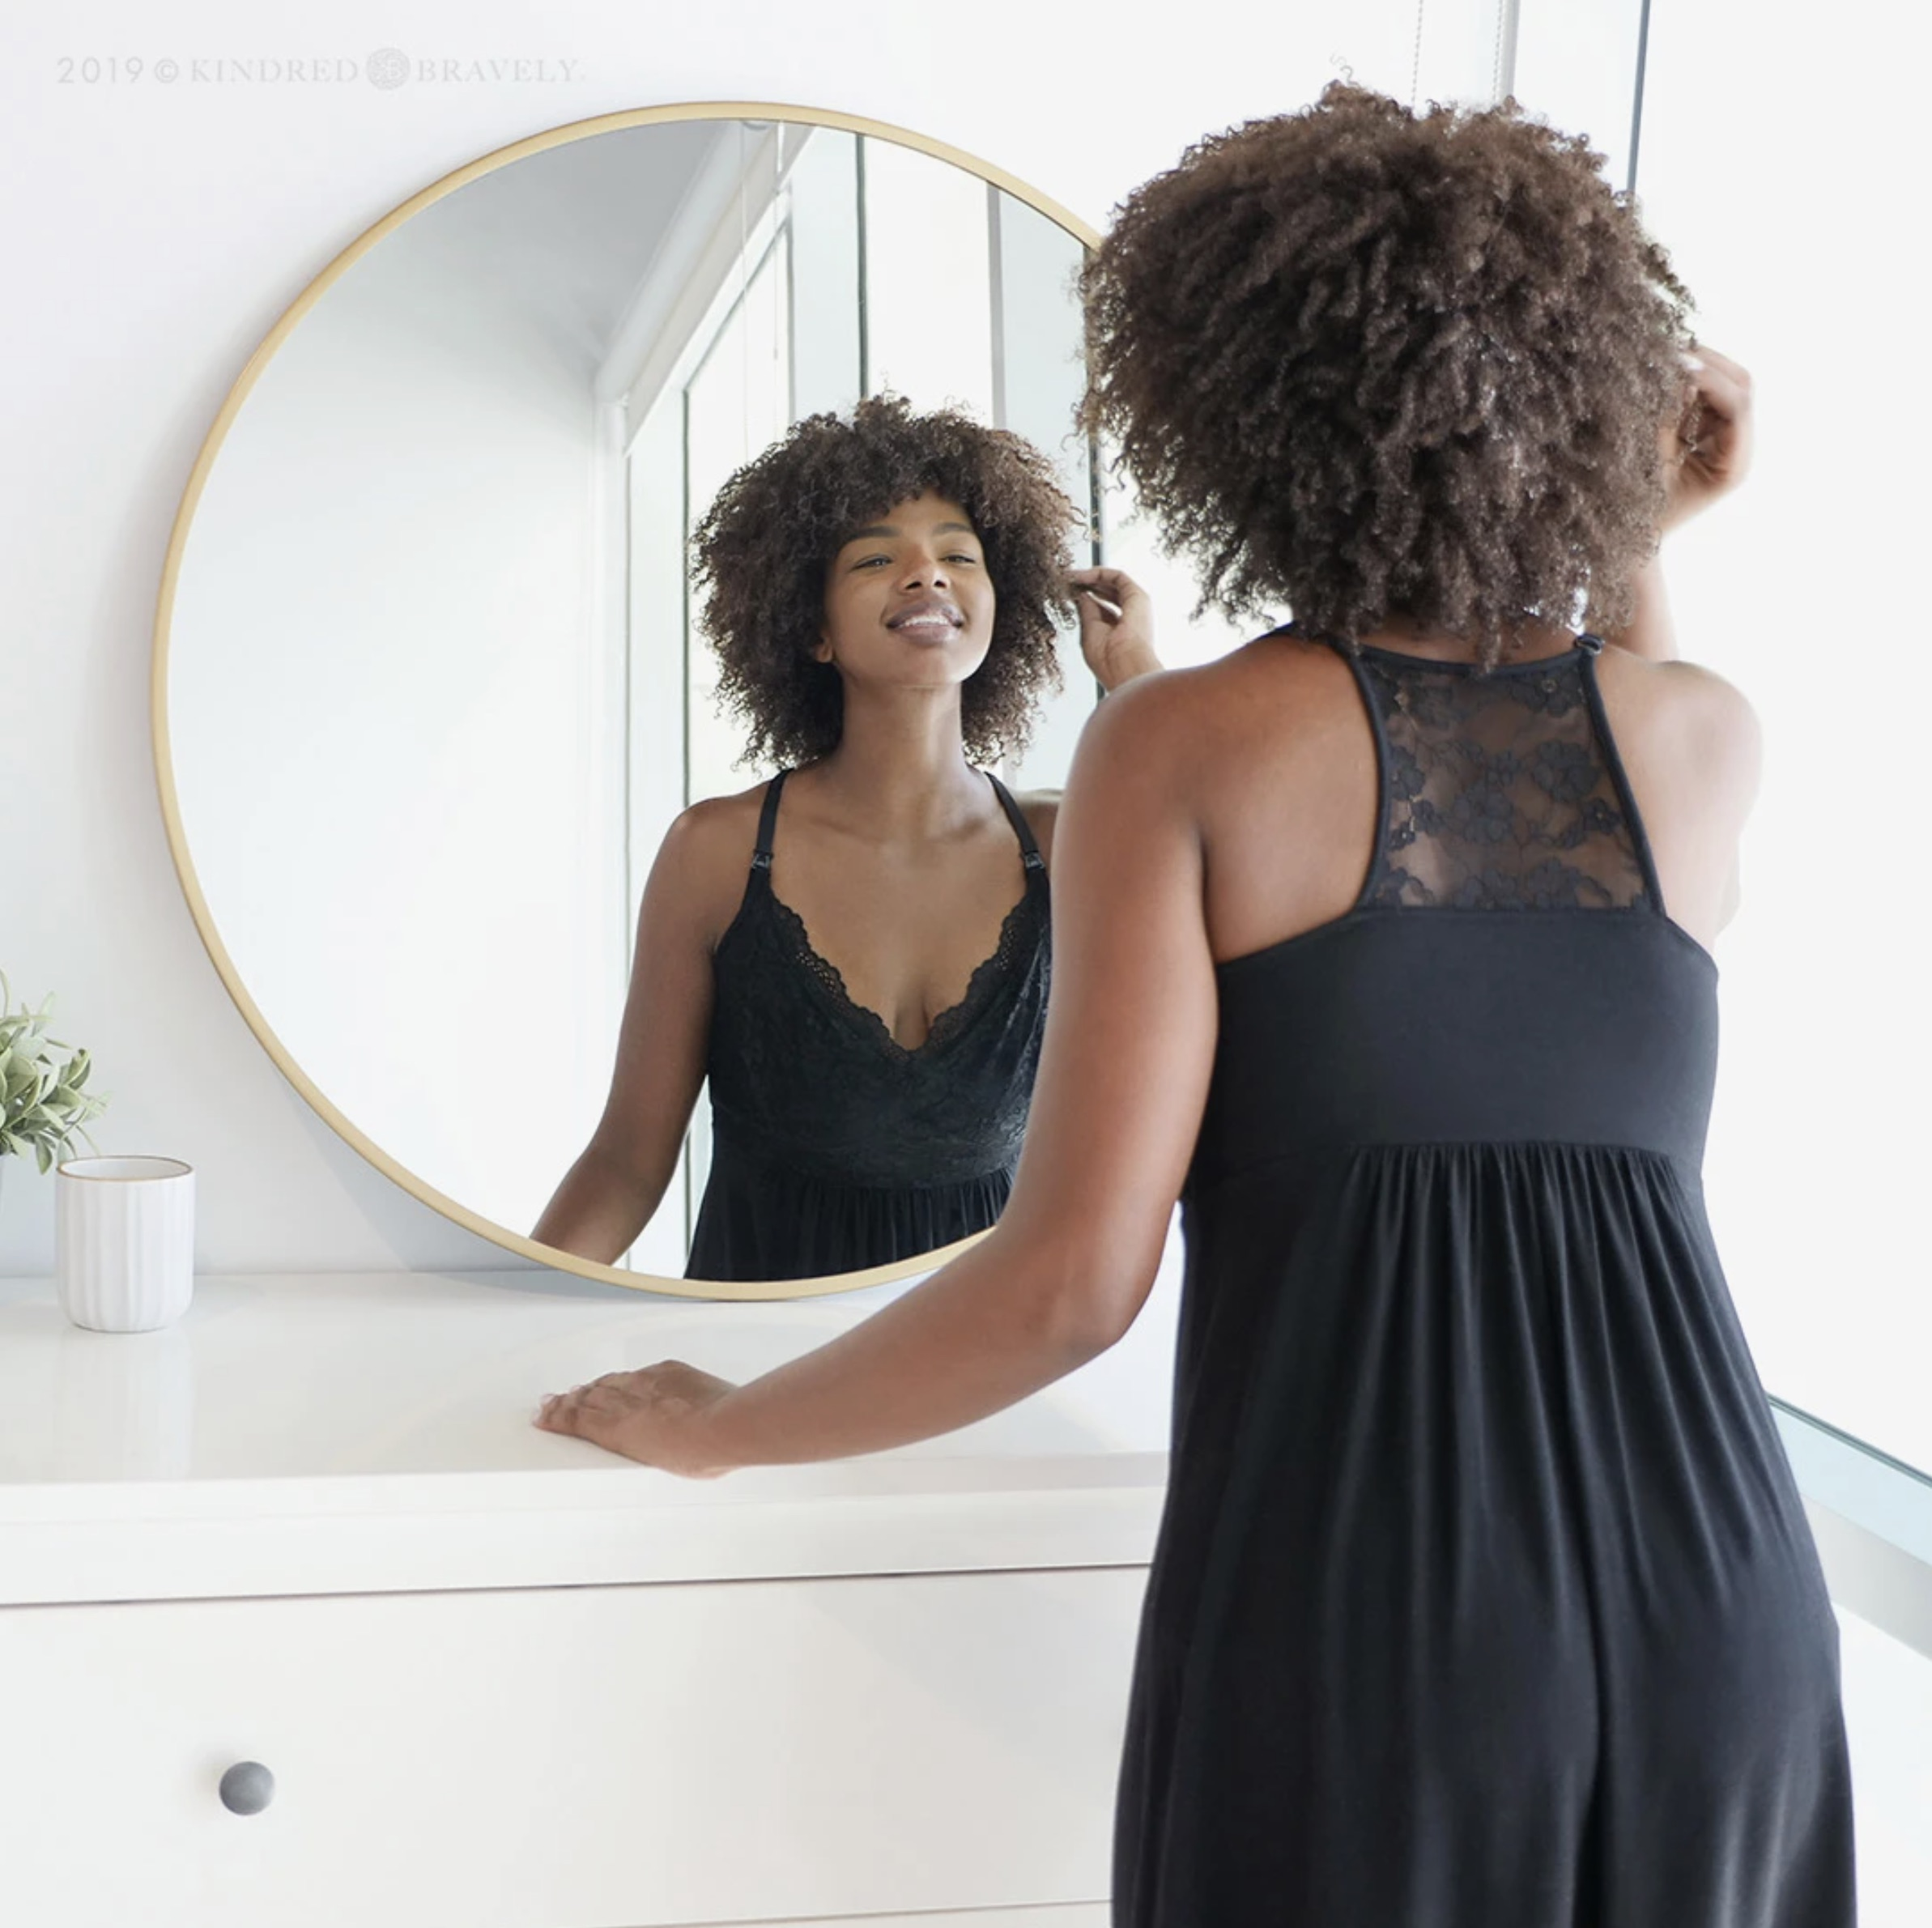 woman looking at her reflection in mirror while wearing black maternity nursing nightgown